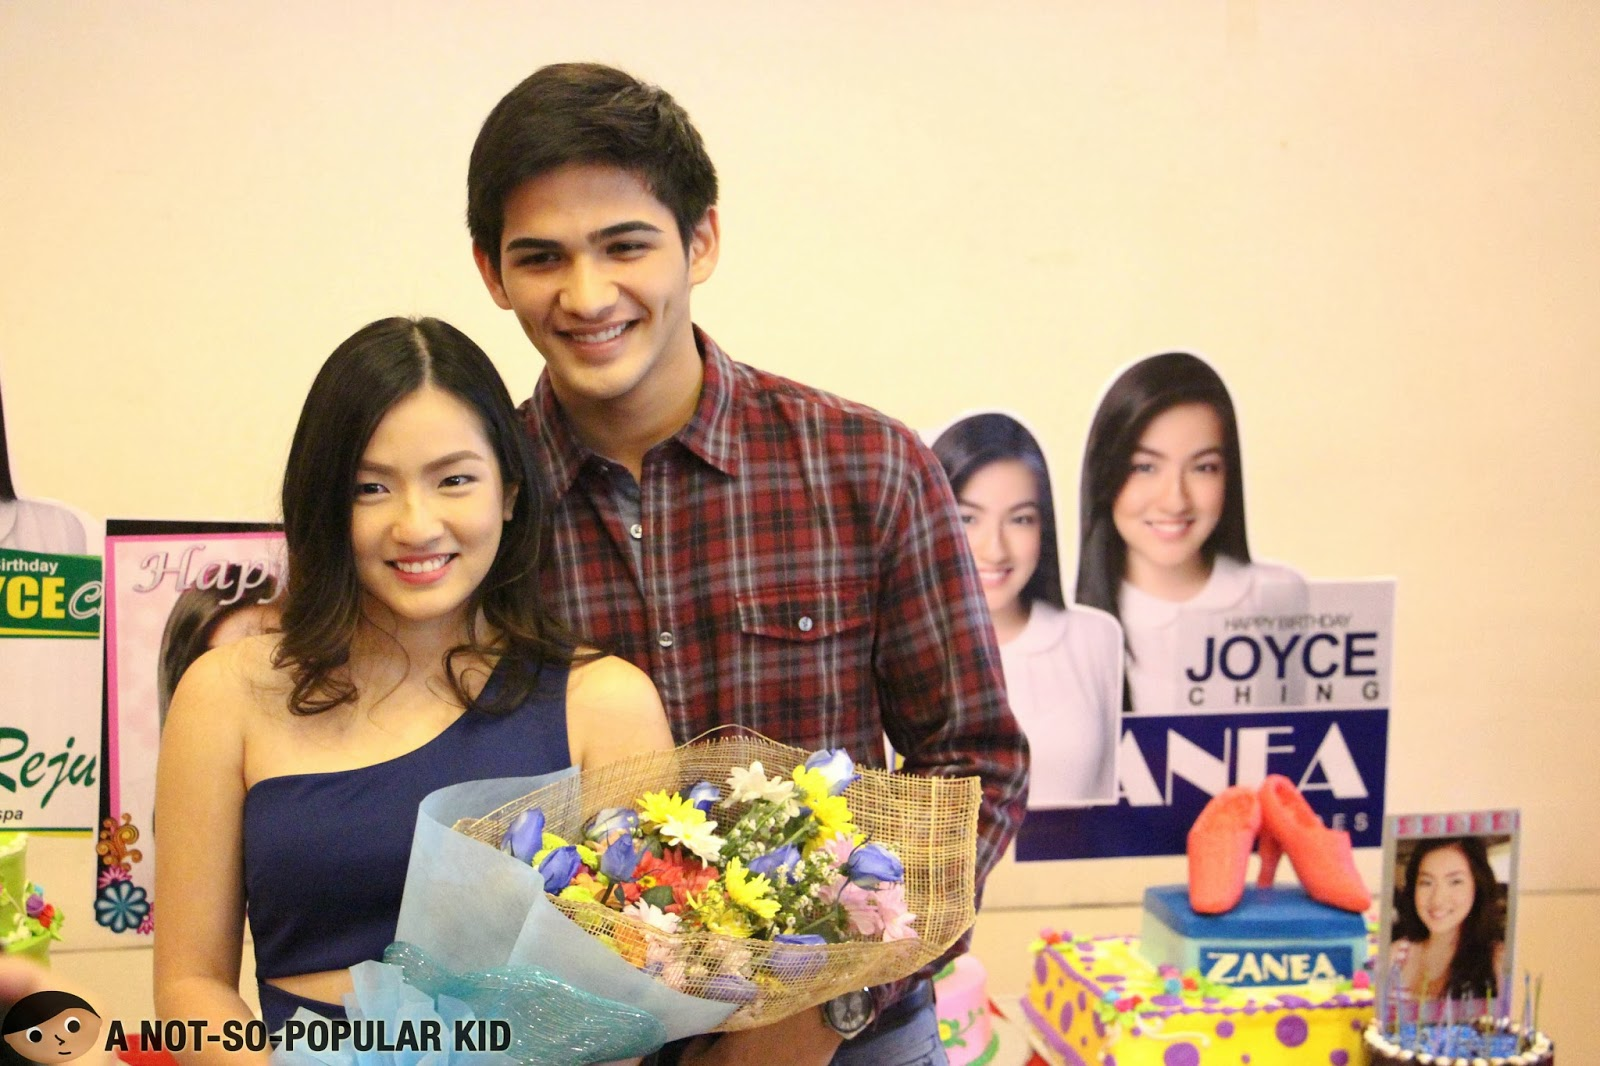 Joyce Ching and Phytos Ramirez posing together